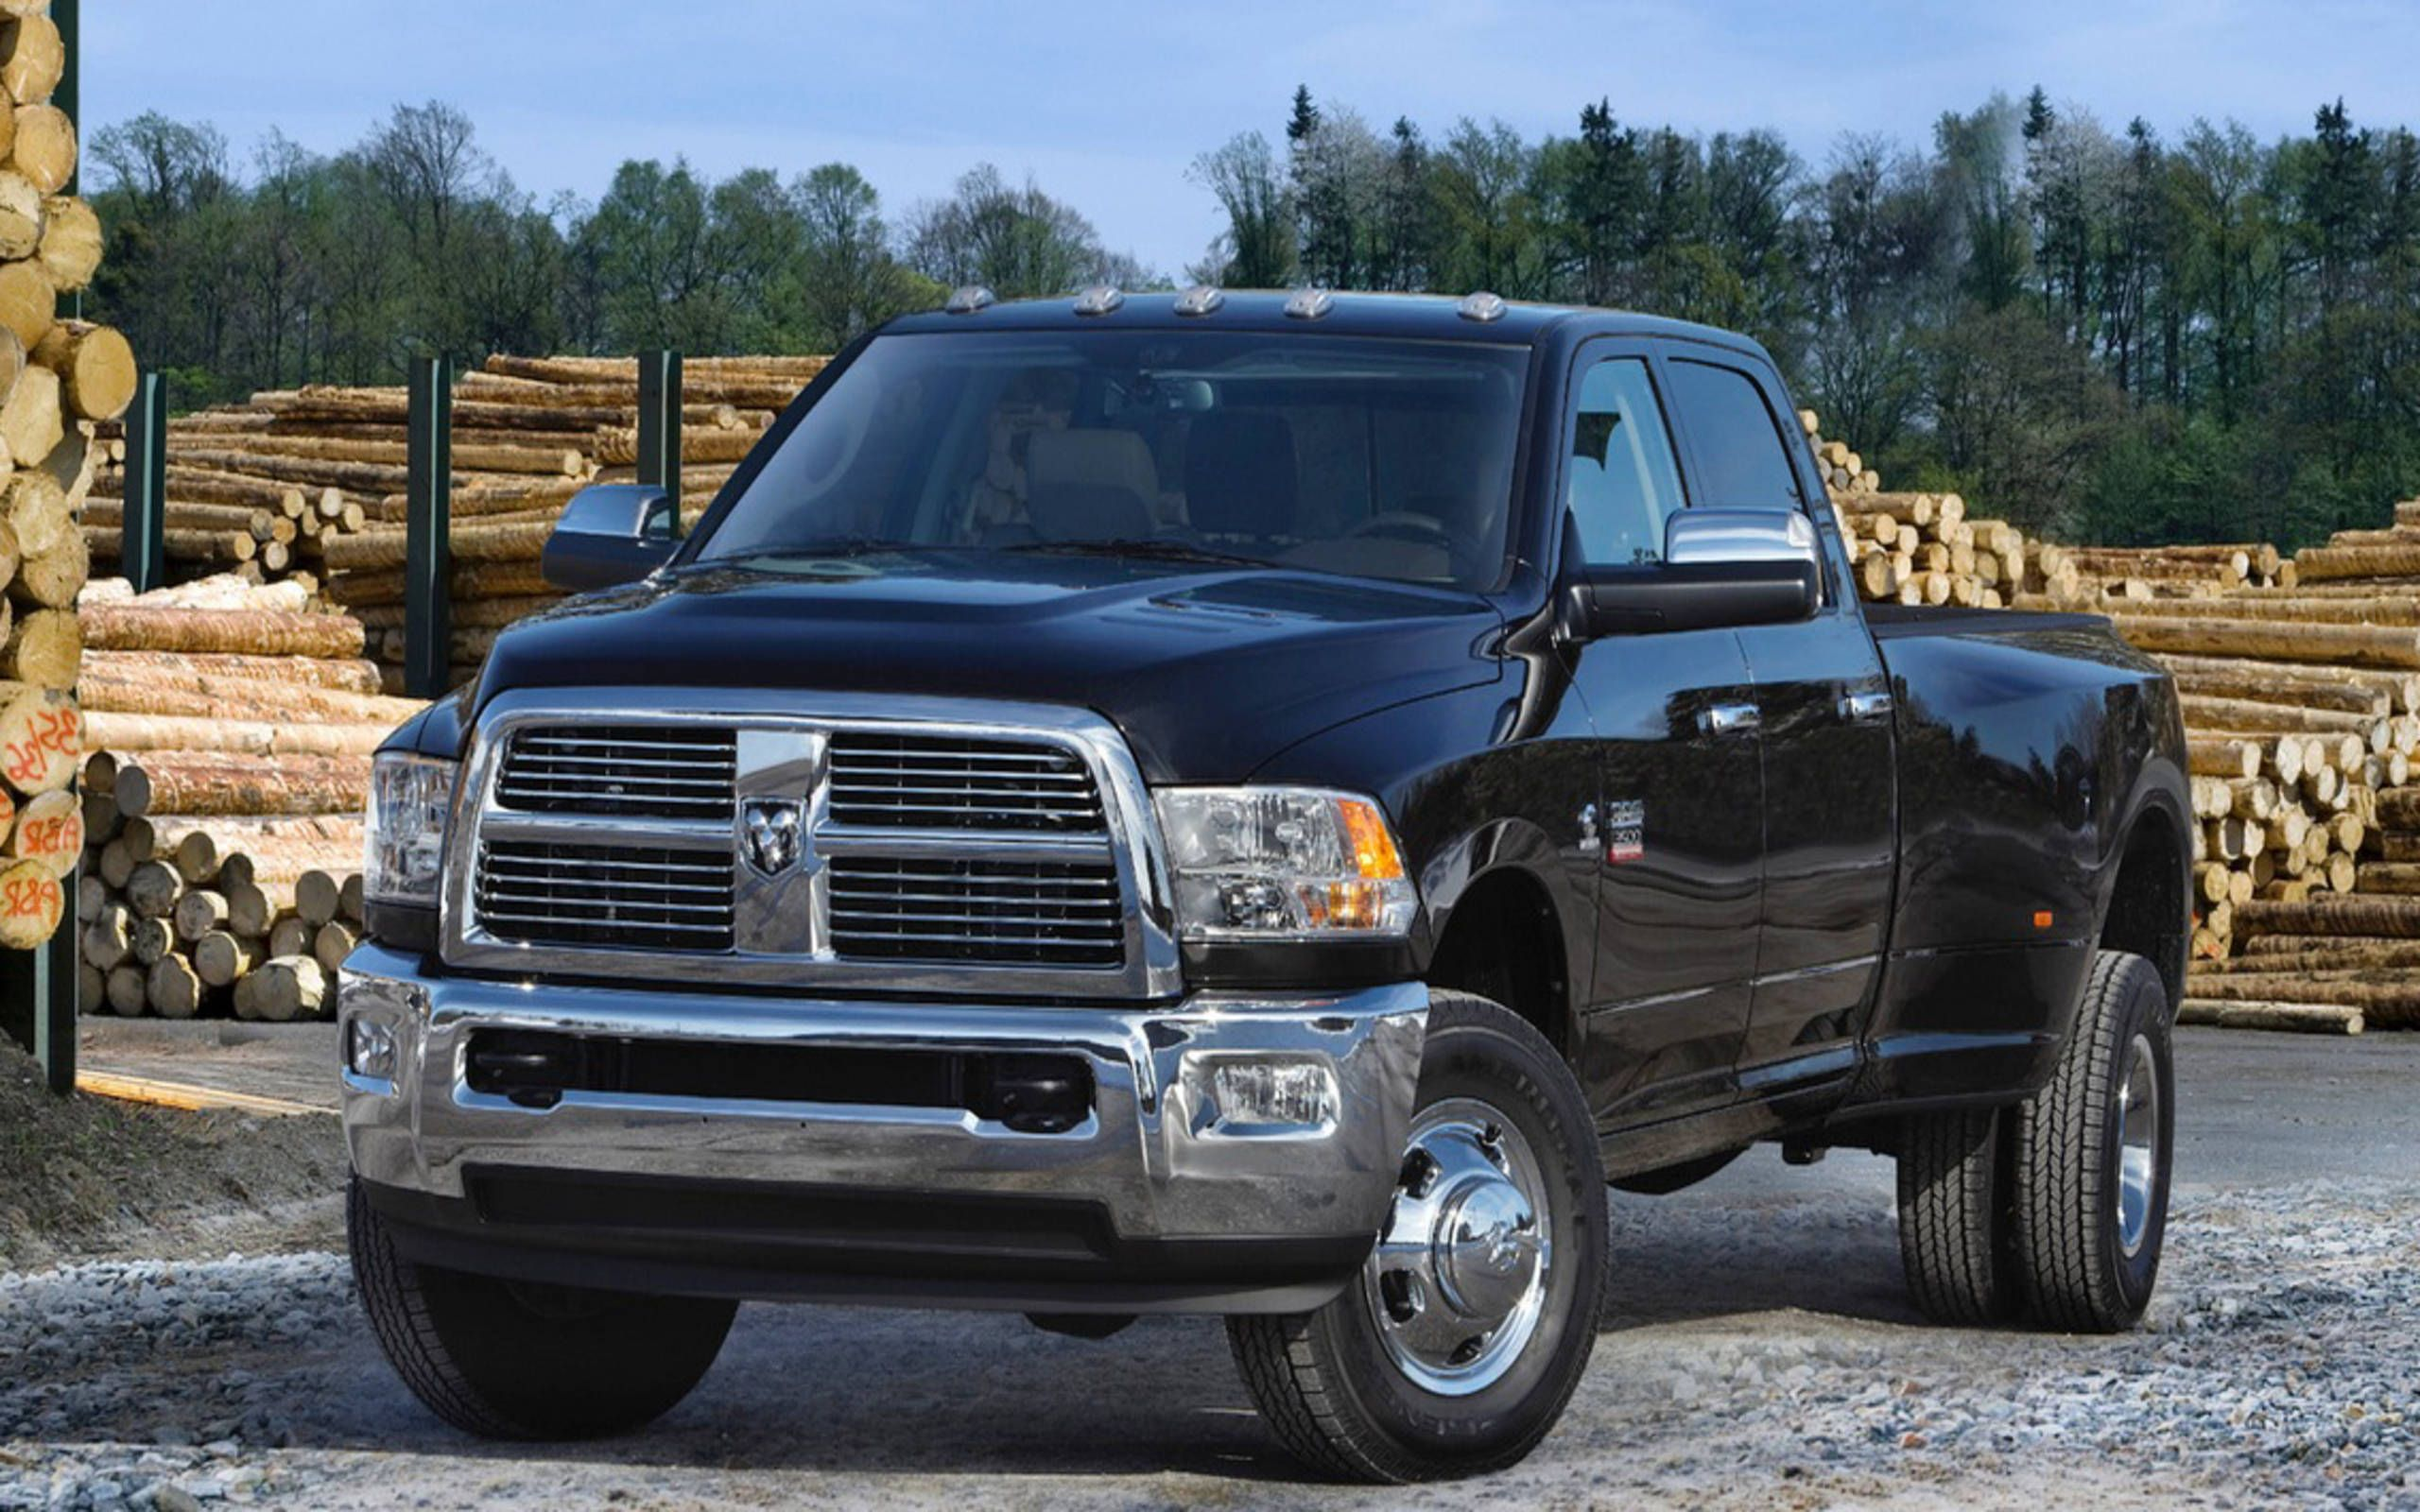 Dodge Ram And Cummins Face Diesel Emissions Claims In Class Action Lawsuit